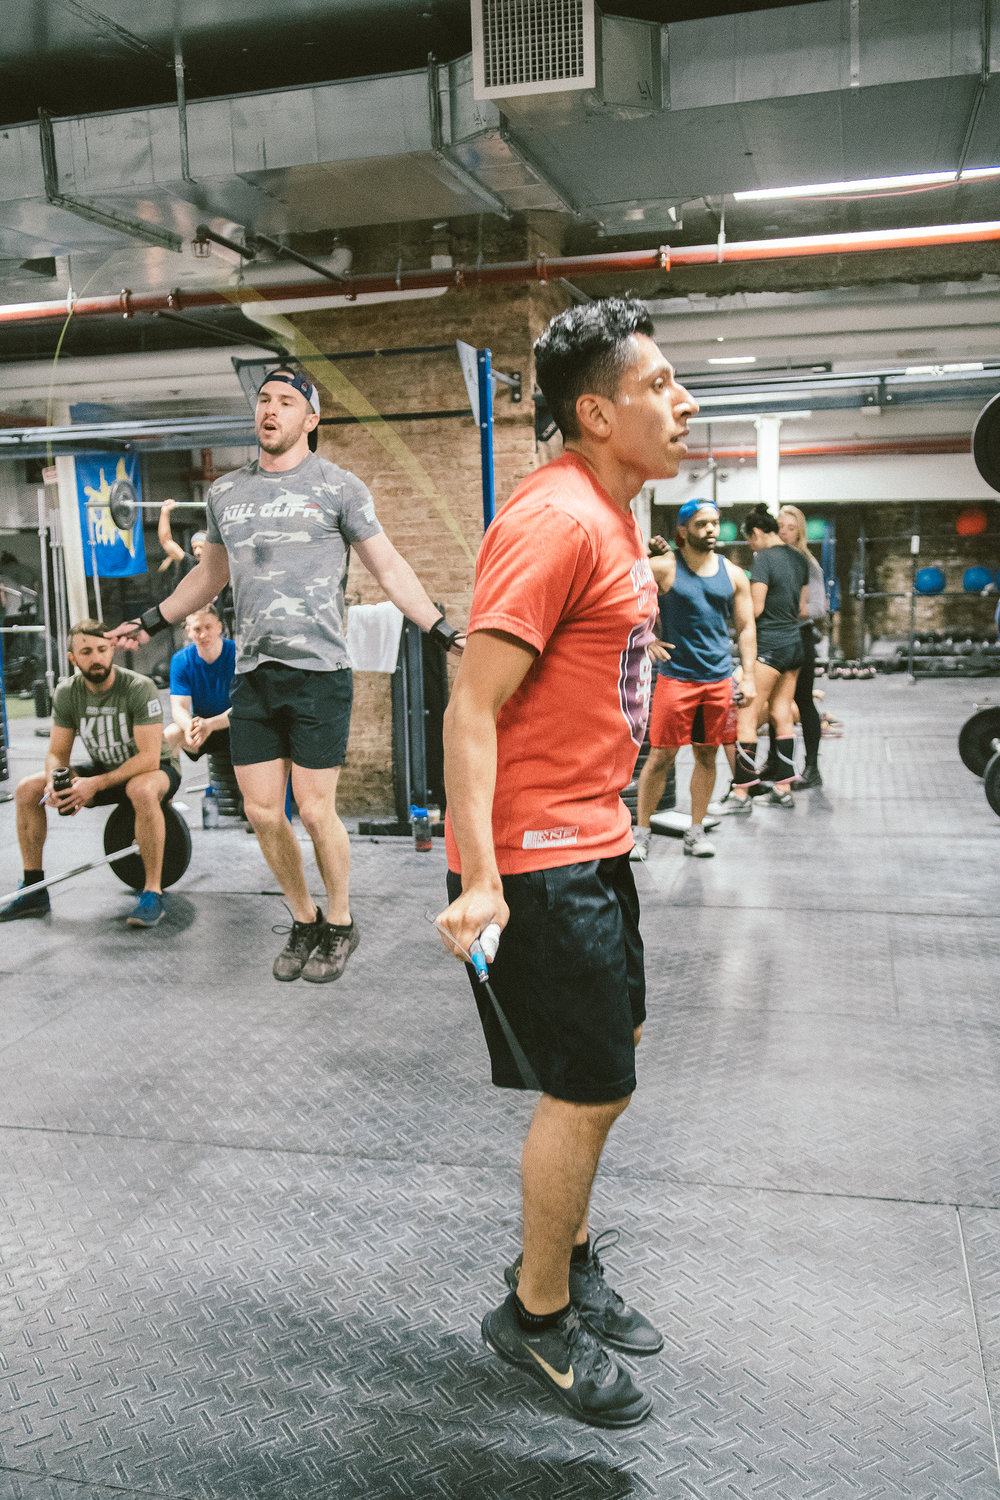 CrossFit Union Strong 17.5 060 20170325.jpg